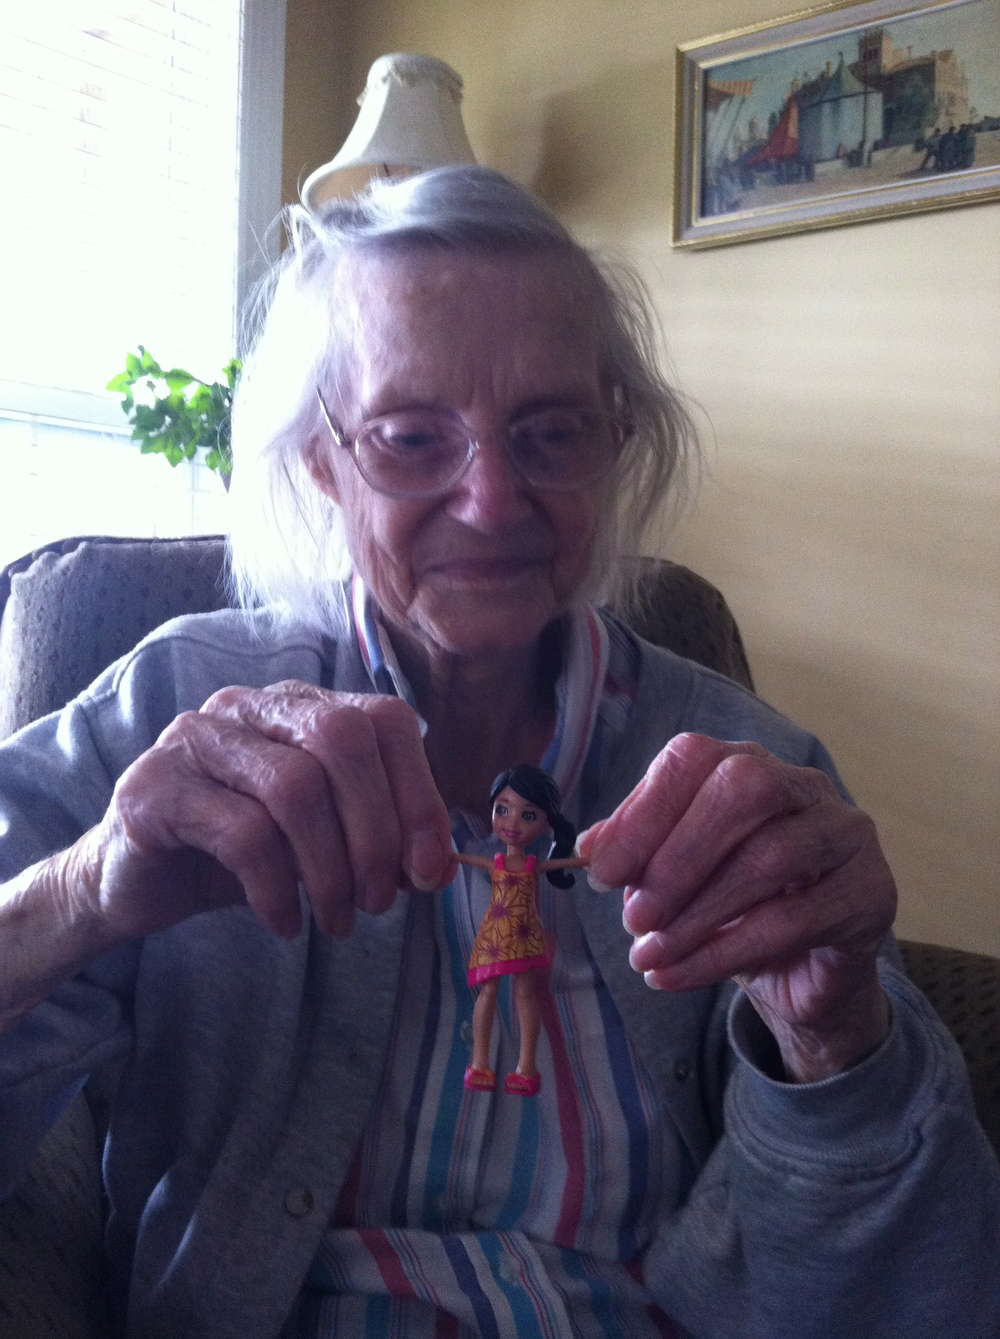 Visiting Nona in the assisted living home on the Fourth of July in 2012. I thought a toy might cheer her up.